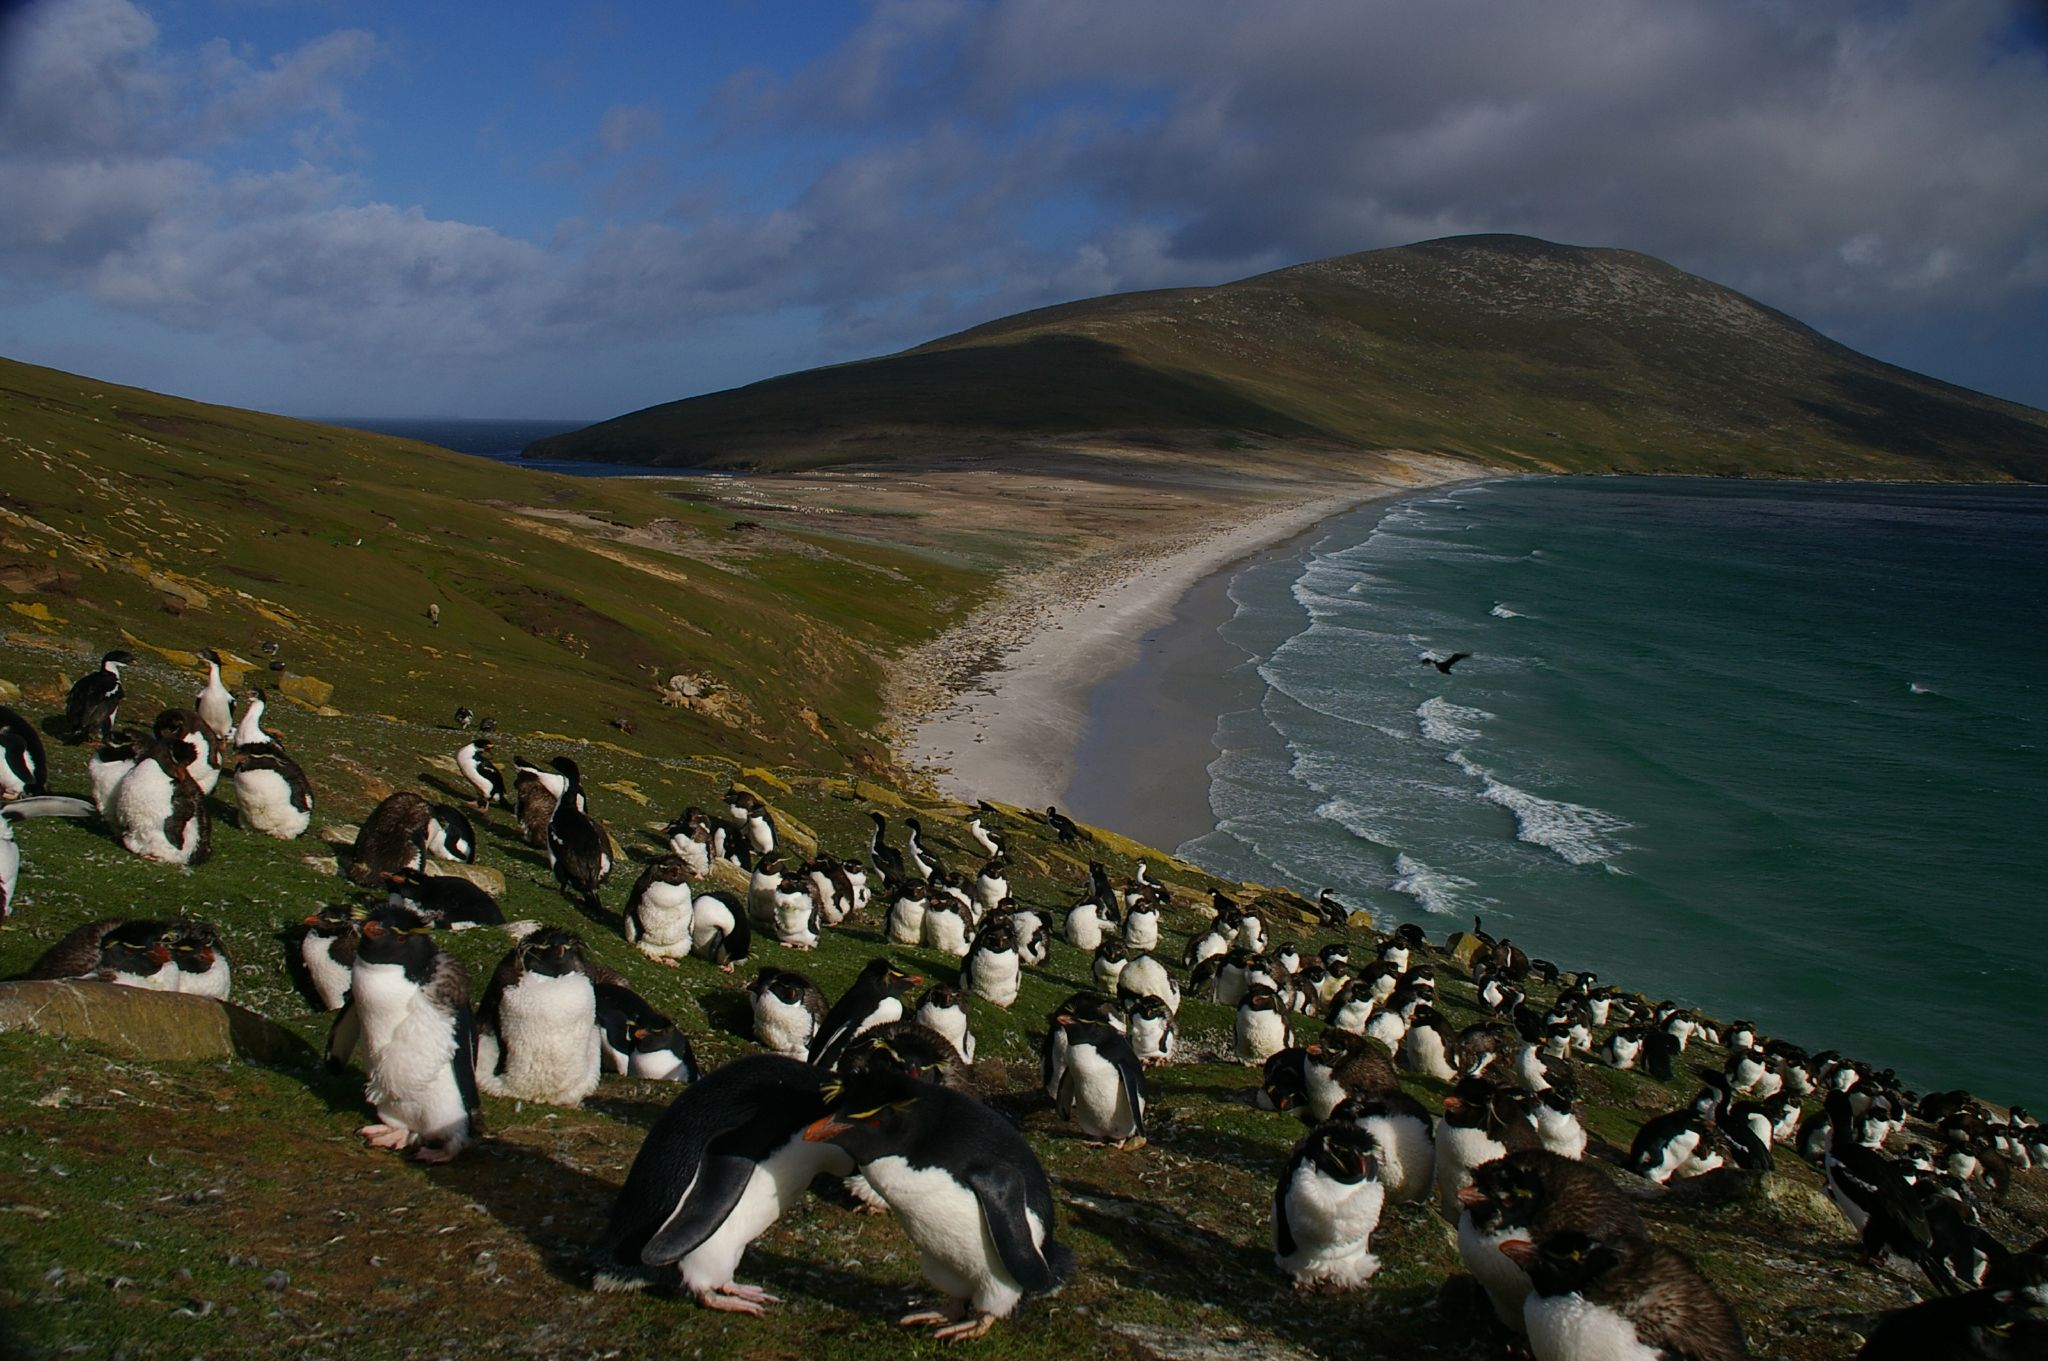 Falkland_Islands_Penguins_82.jpg